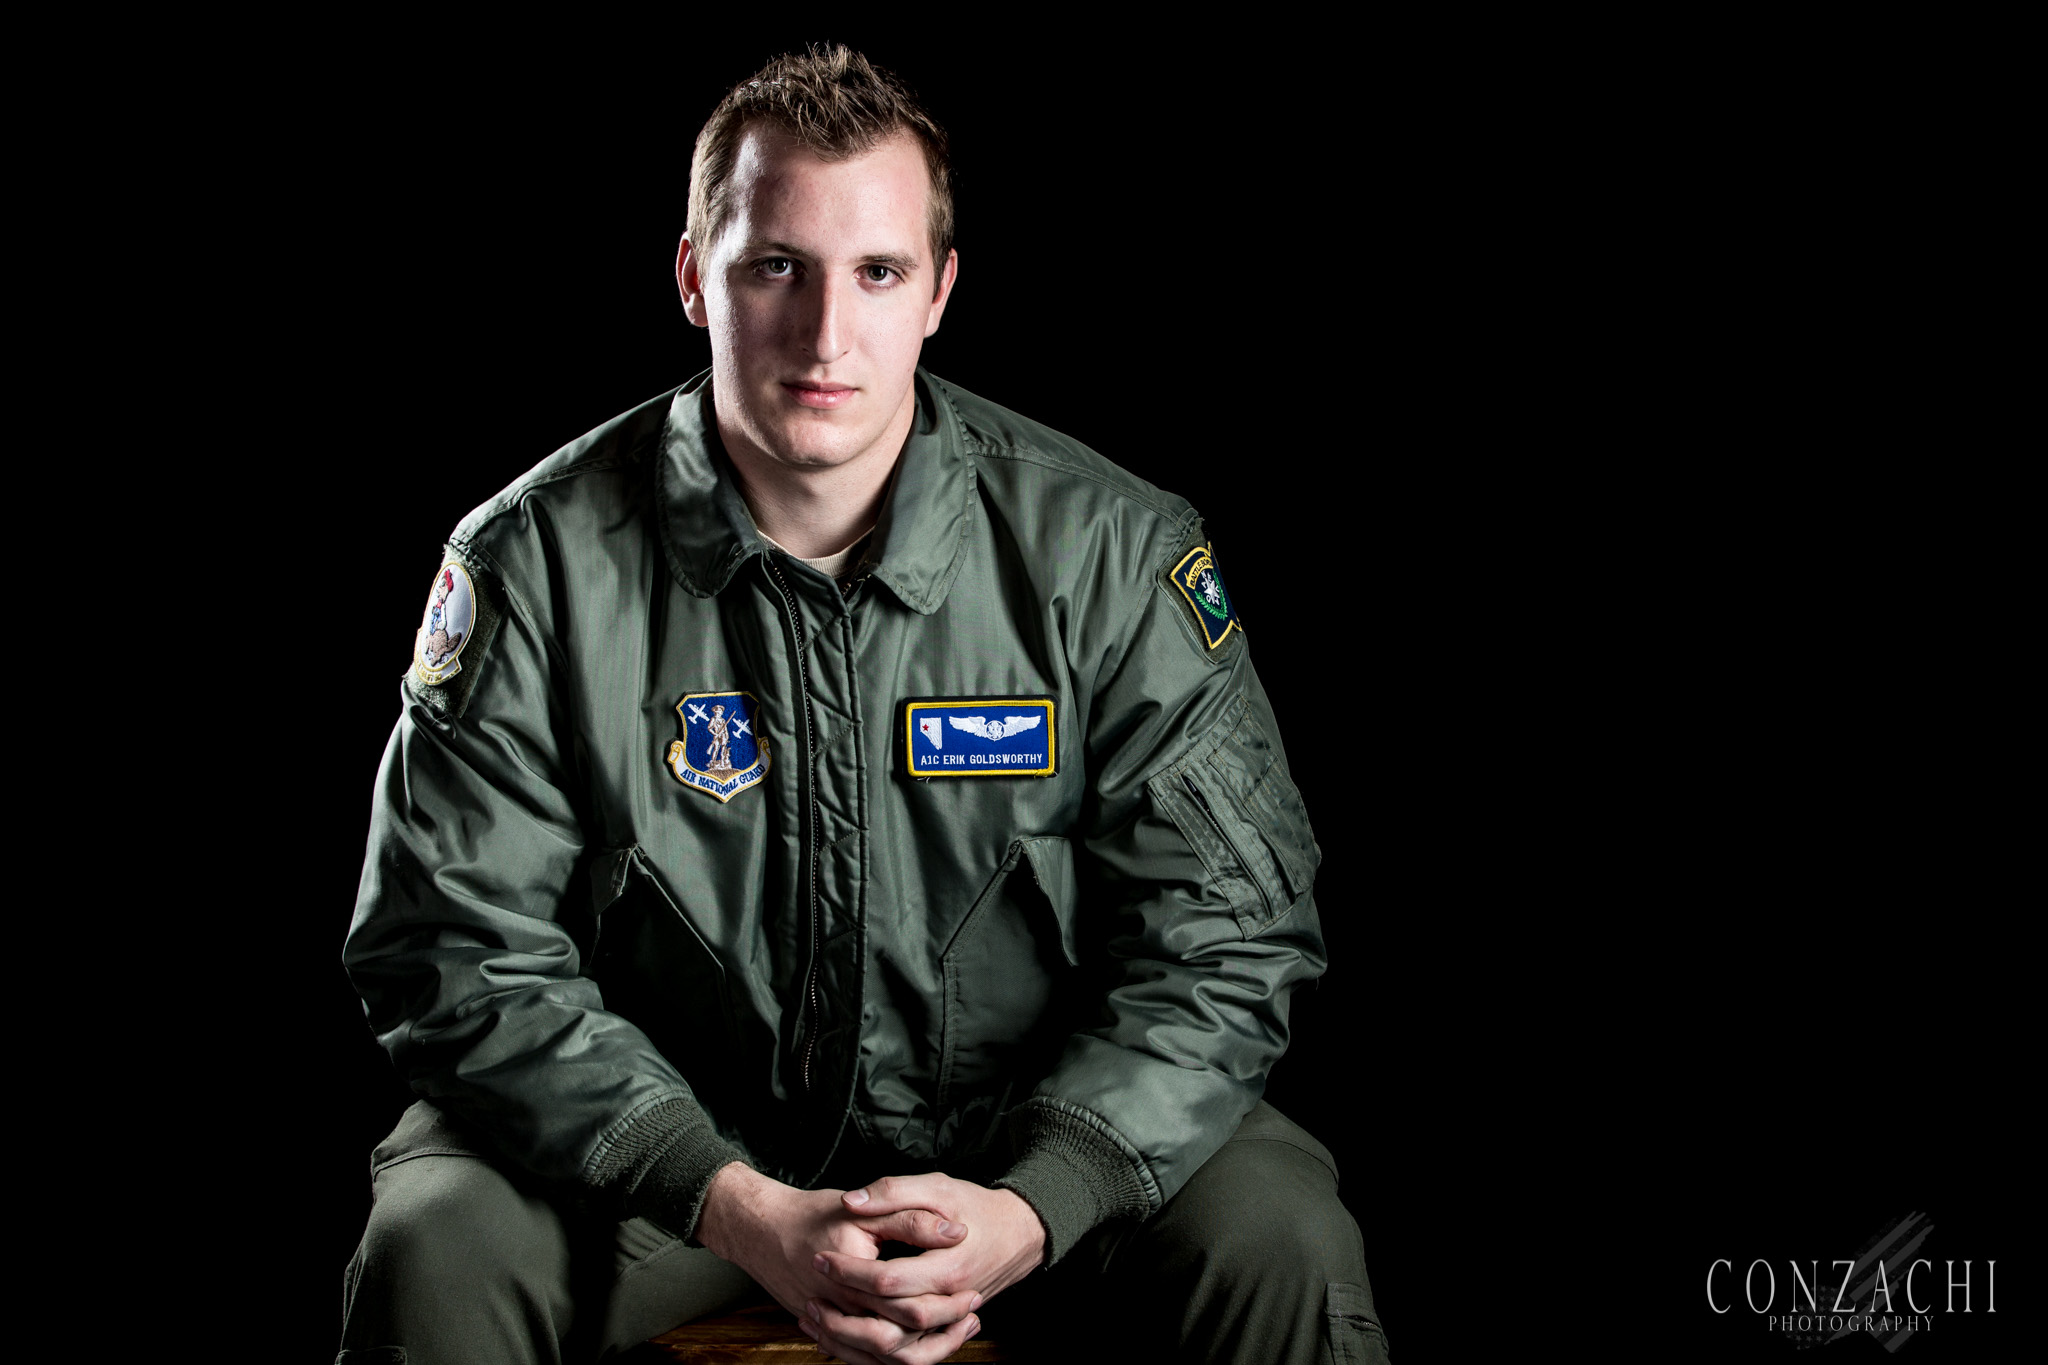 "Erik Goldsworthy, 21 Branch: Air Force Status: Air National Guard MOS: Loadmaster, 1A251 Years Served: 2014-Present Deployments: Coming Soon  His Story: ""I am a 3rd generation service member at the beginning of my career. I joined the Nevada Air National Guard right out of high school. My father works at the same base as I do and I hope that I can live up to his colossal reputation and create my own legacy at the same time.""  From the Author: Erik was a pleasure to work with. Sharp, honorable, and eager to serve his country. Erik has not deployed as of yet, but that does not make him any less of a brother in arms to me than any other veteran. When you meet someone like Erik, and hear them speak and see their commitment, you just know they will do great things in their life. Good luck in your military career Erik, I look forward to talking to you again.  Thank you for your service Erik, and Happy Veterans Day."